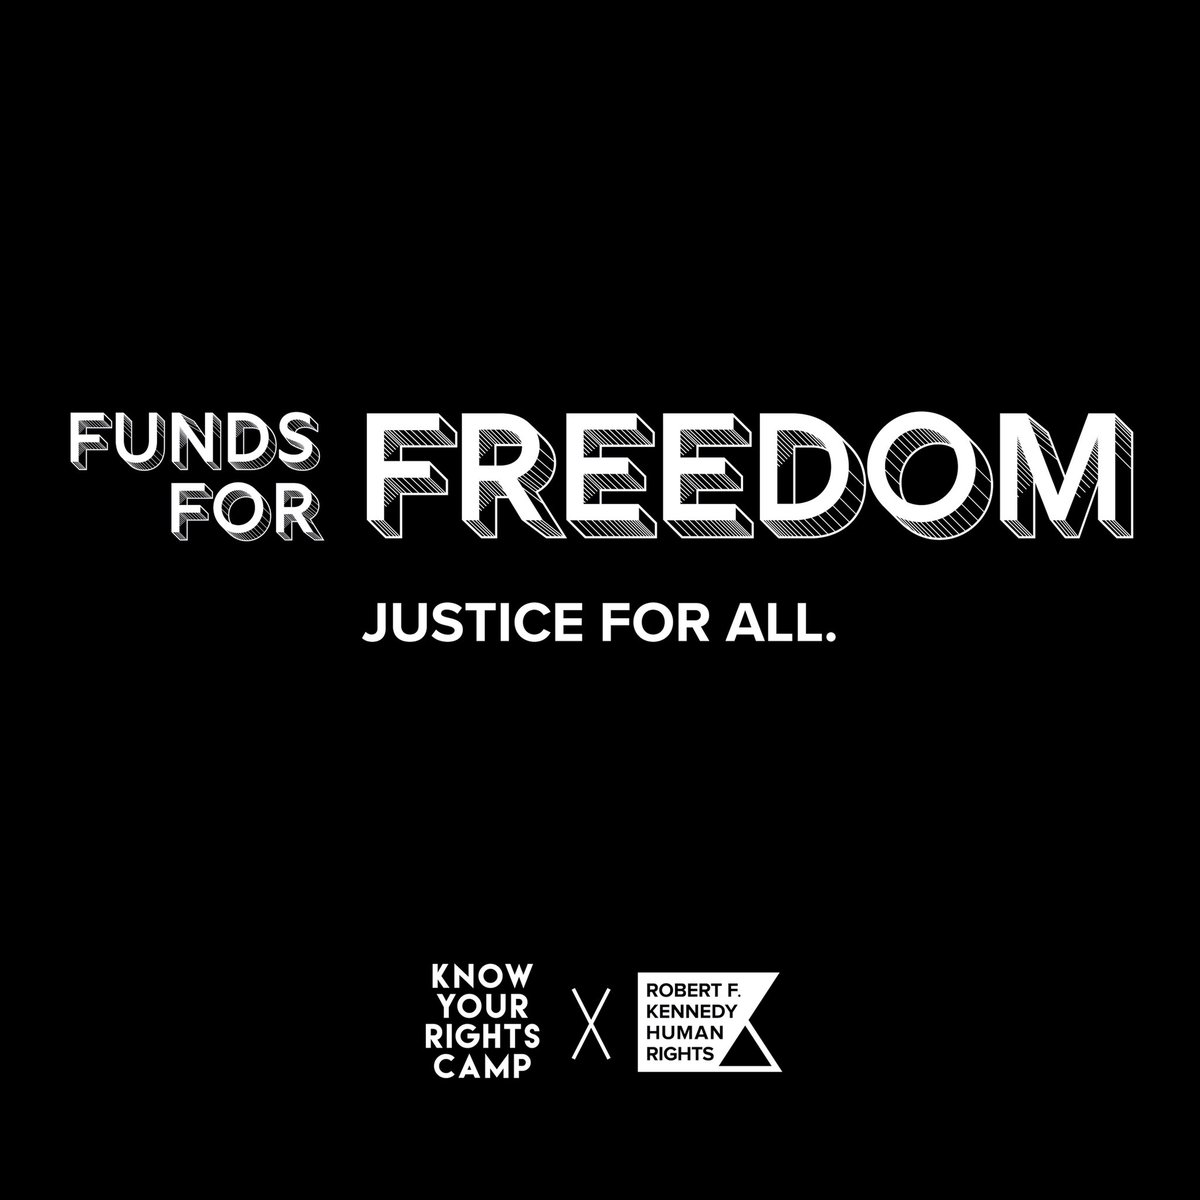 We've dedicated $1,000,000 to bail funds nationwide working w/ @RFKHumanRights matching funds to help free our brothers, sisters & siblings threatened by #COVID19. To learn more about our #KnowYourRightsCamp COVID-19 Relief Fund  #wegotusk